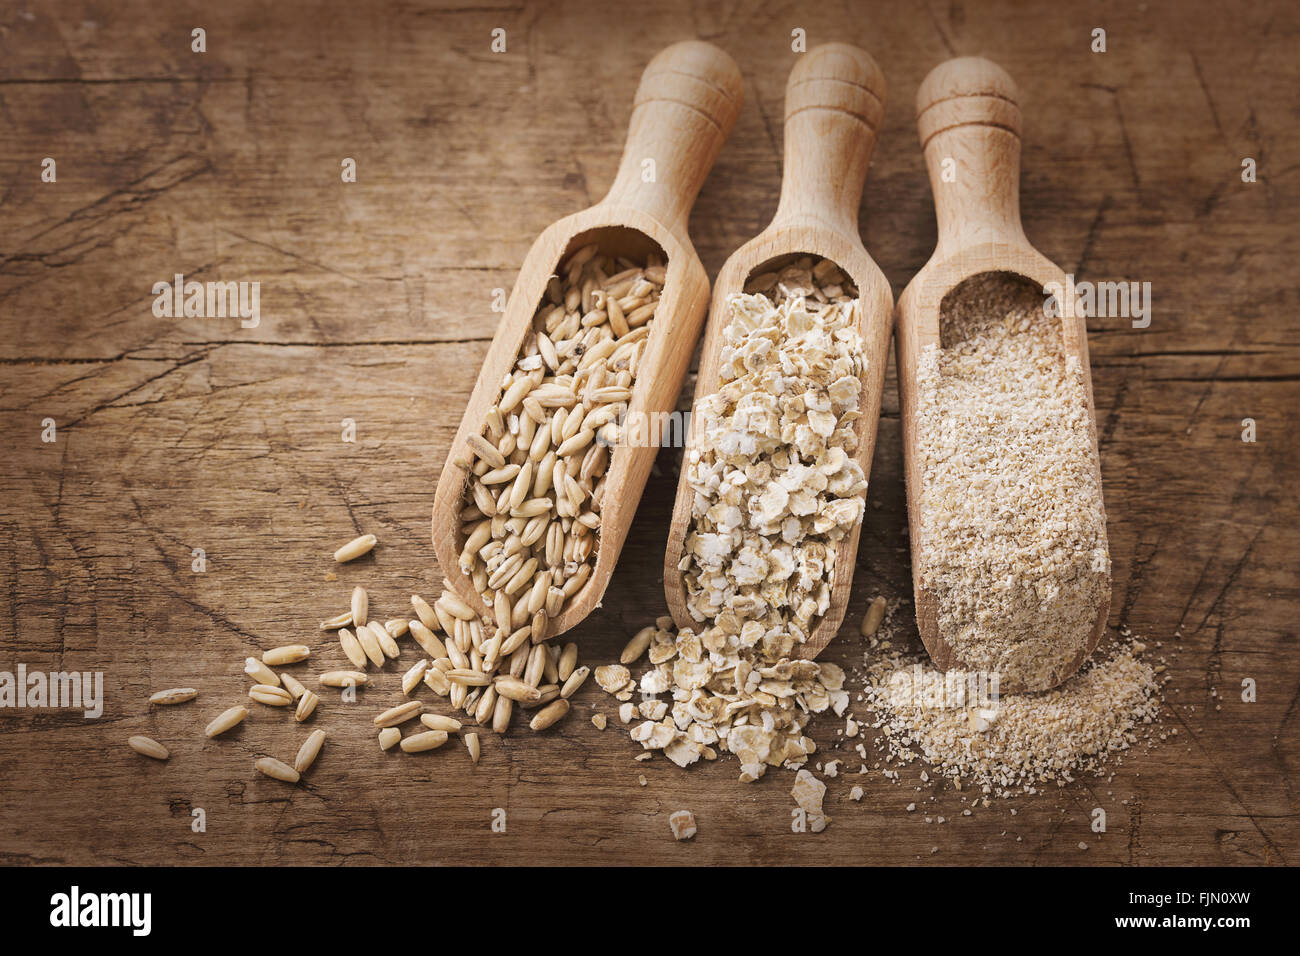 Oat flakes, seeds and bran in spoons - Stock Image